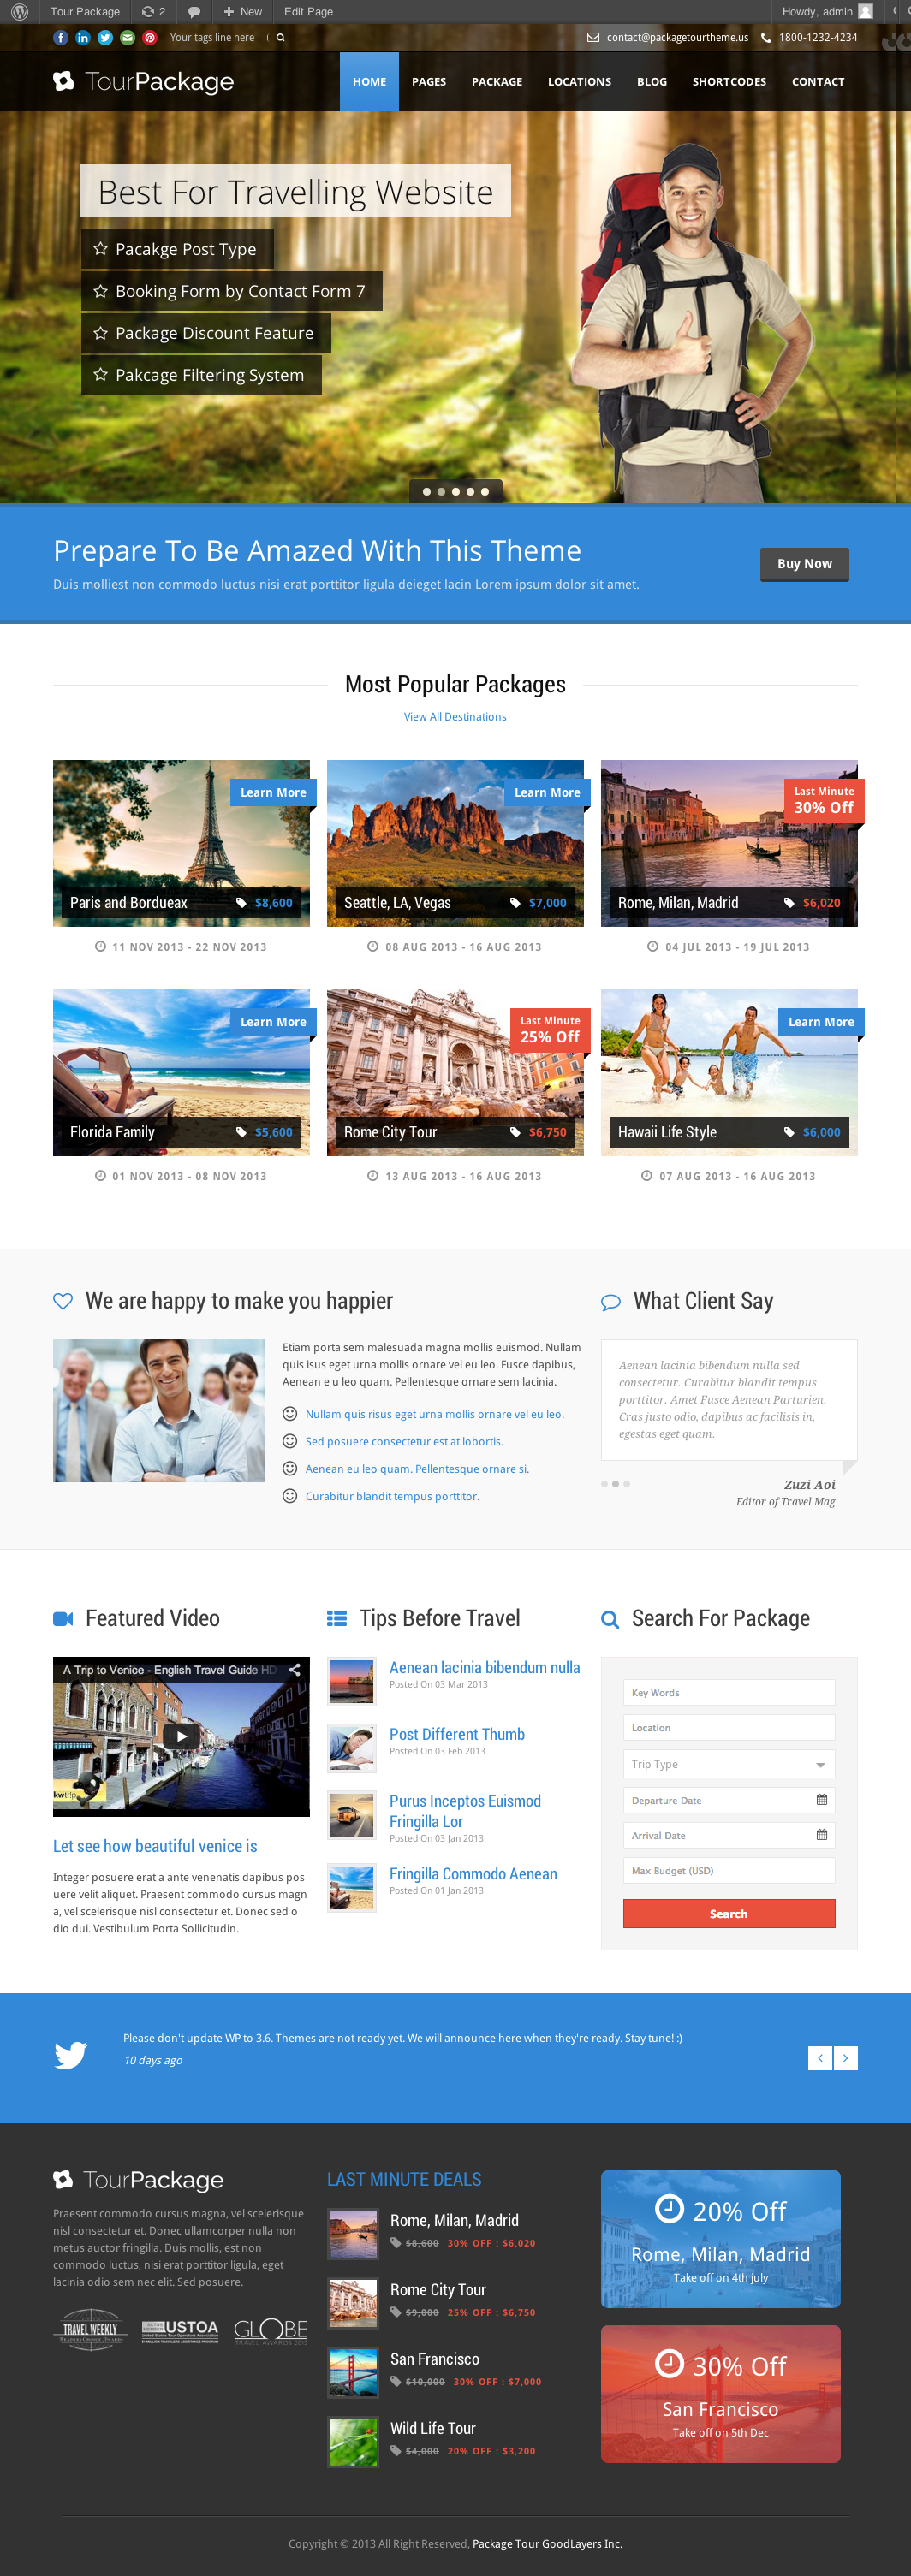 Tour Package - Wordpress Travel/Tour Theme - index page with color changed